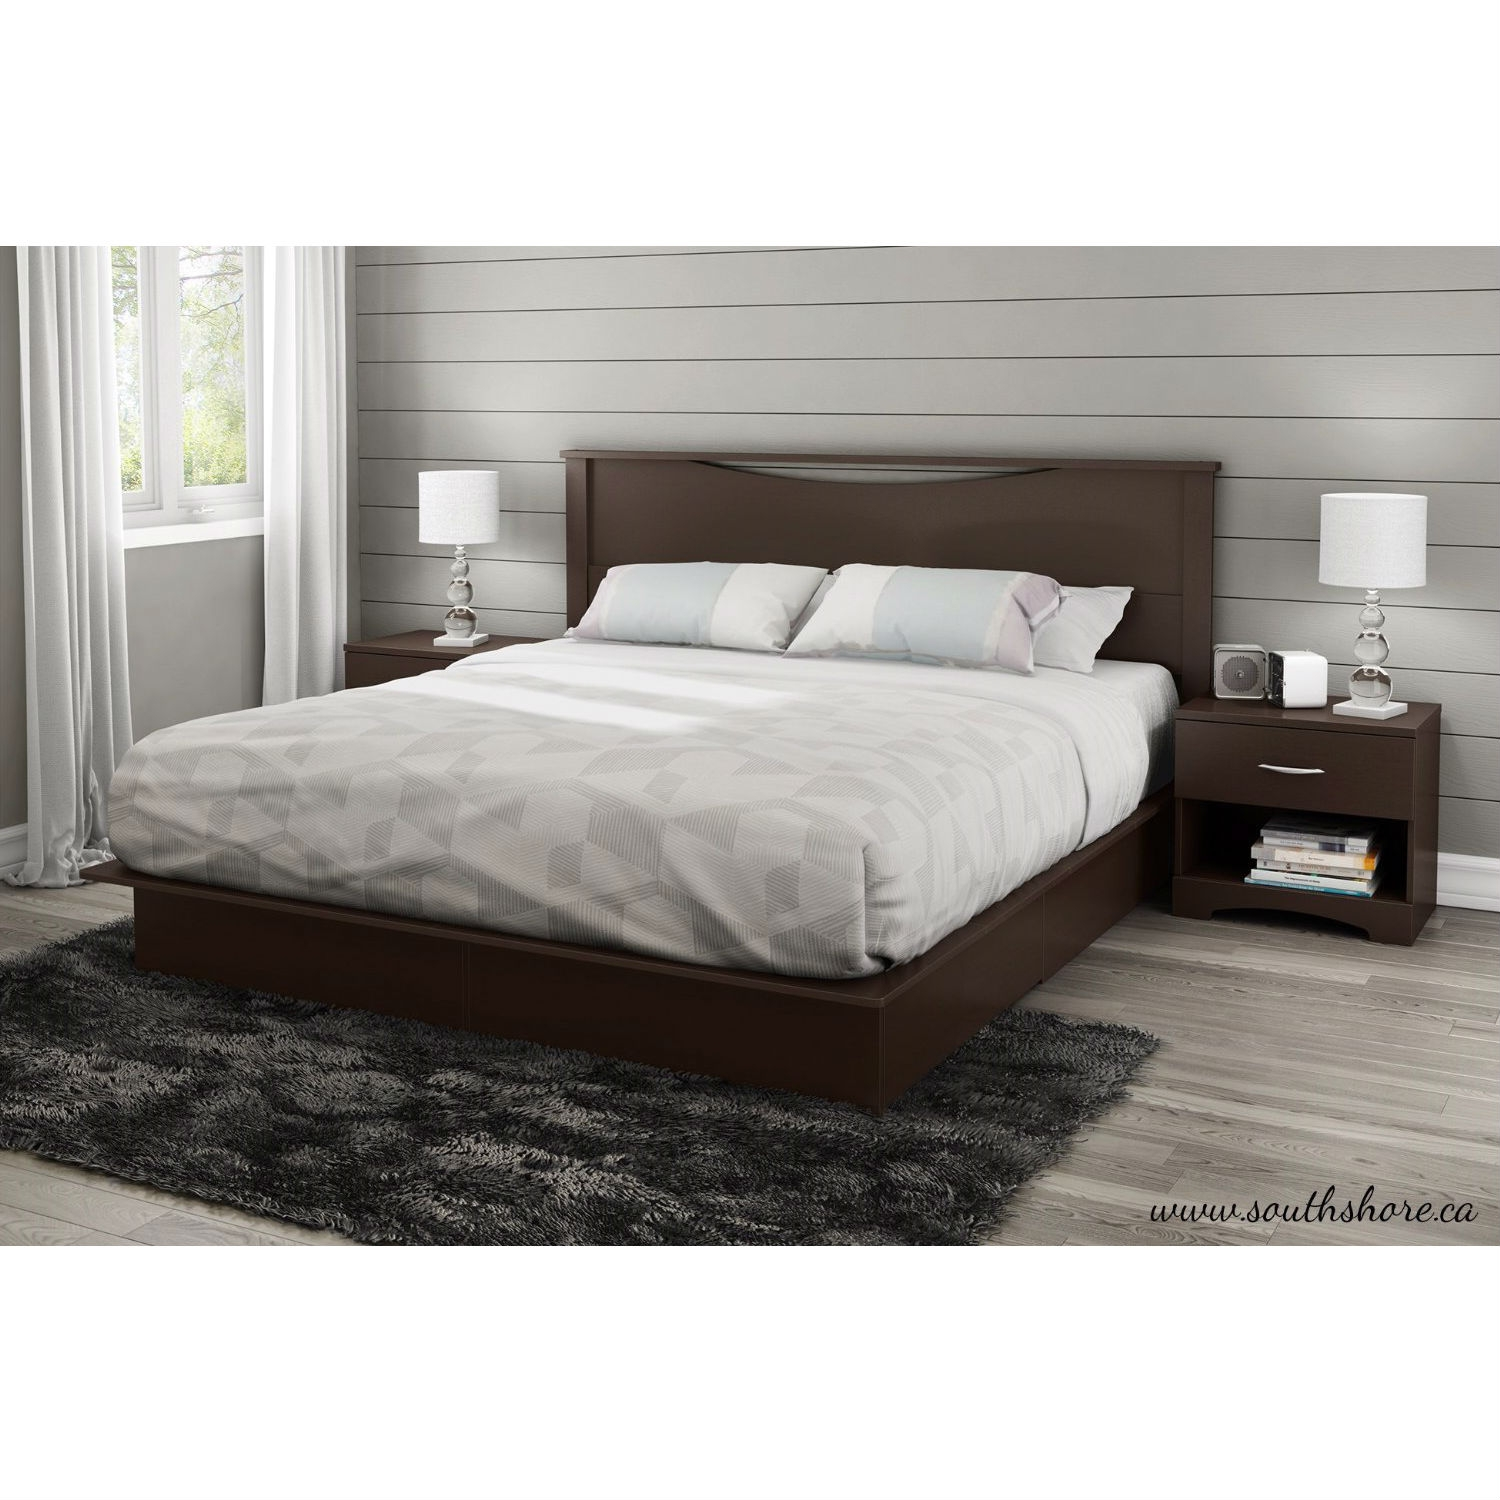 King Size Platform Bed With Storage King Size Modern Platform Bed With 2 Storage Drawers In